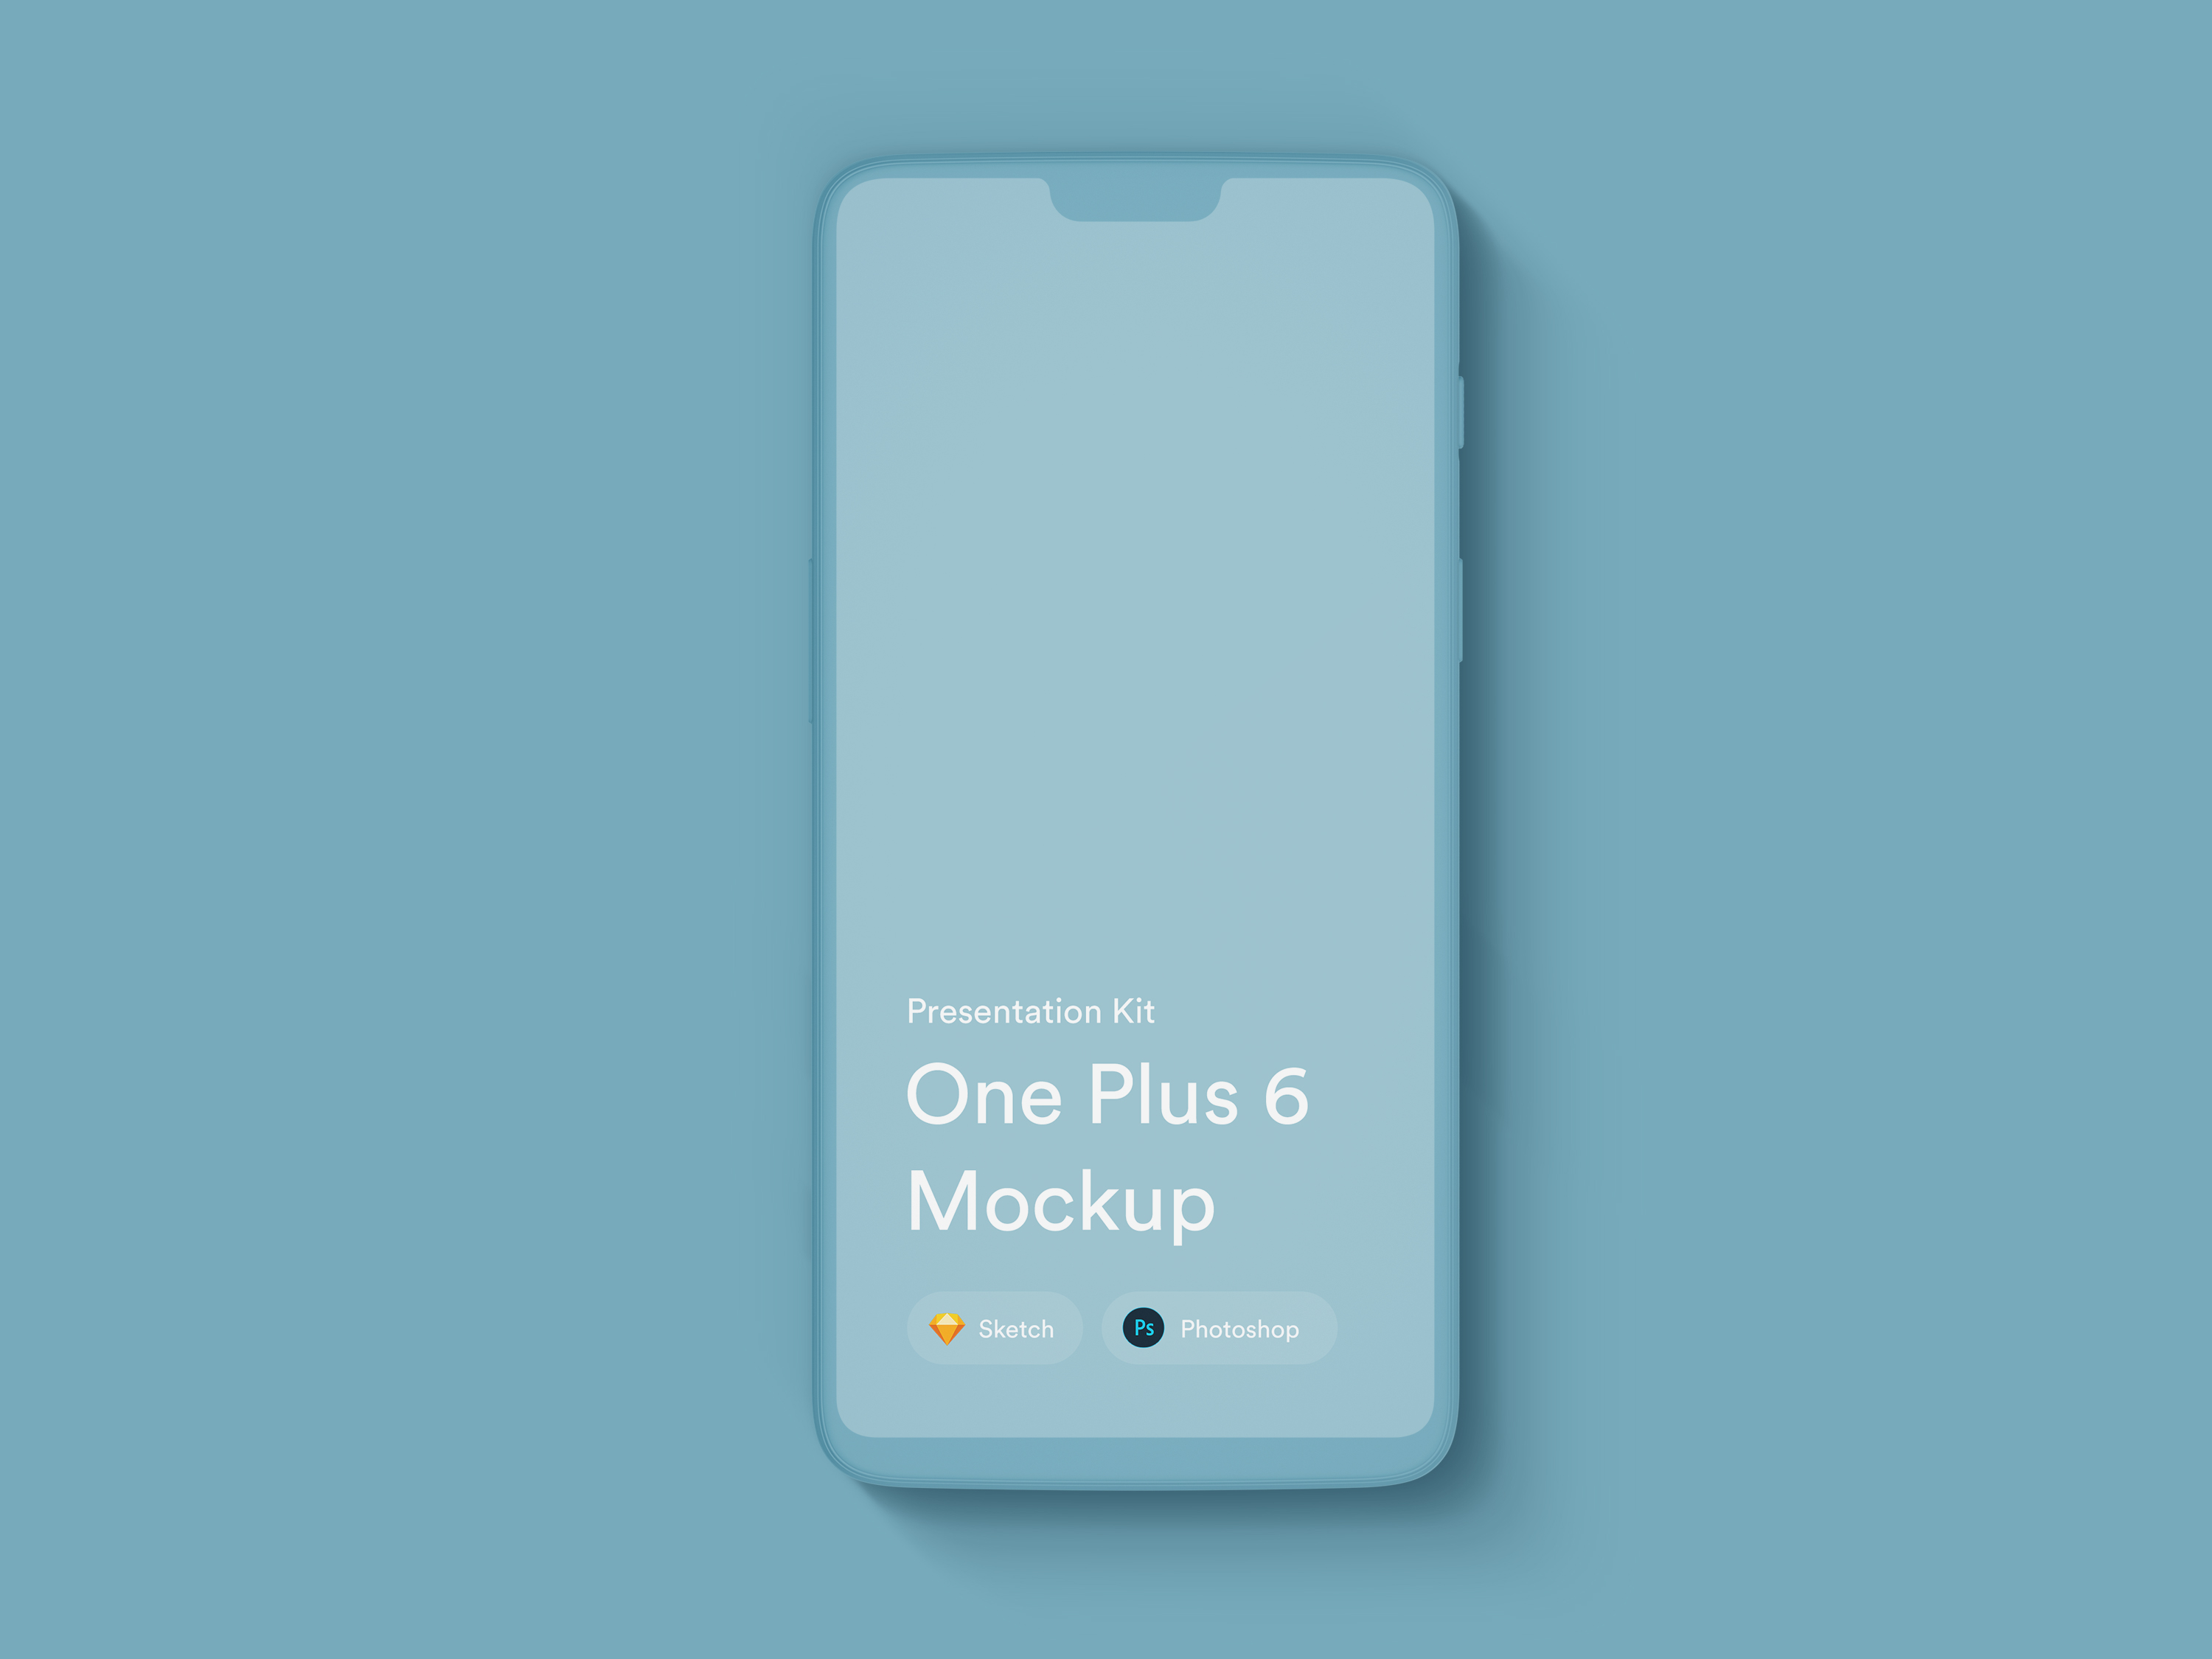 Download OnePlus 6 Mockups for Sketch and Photoshop